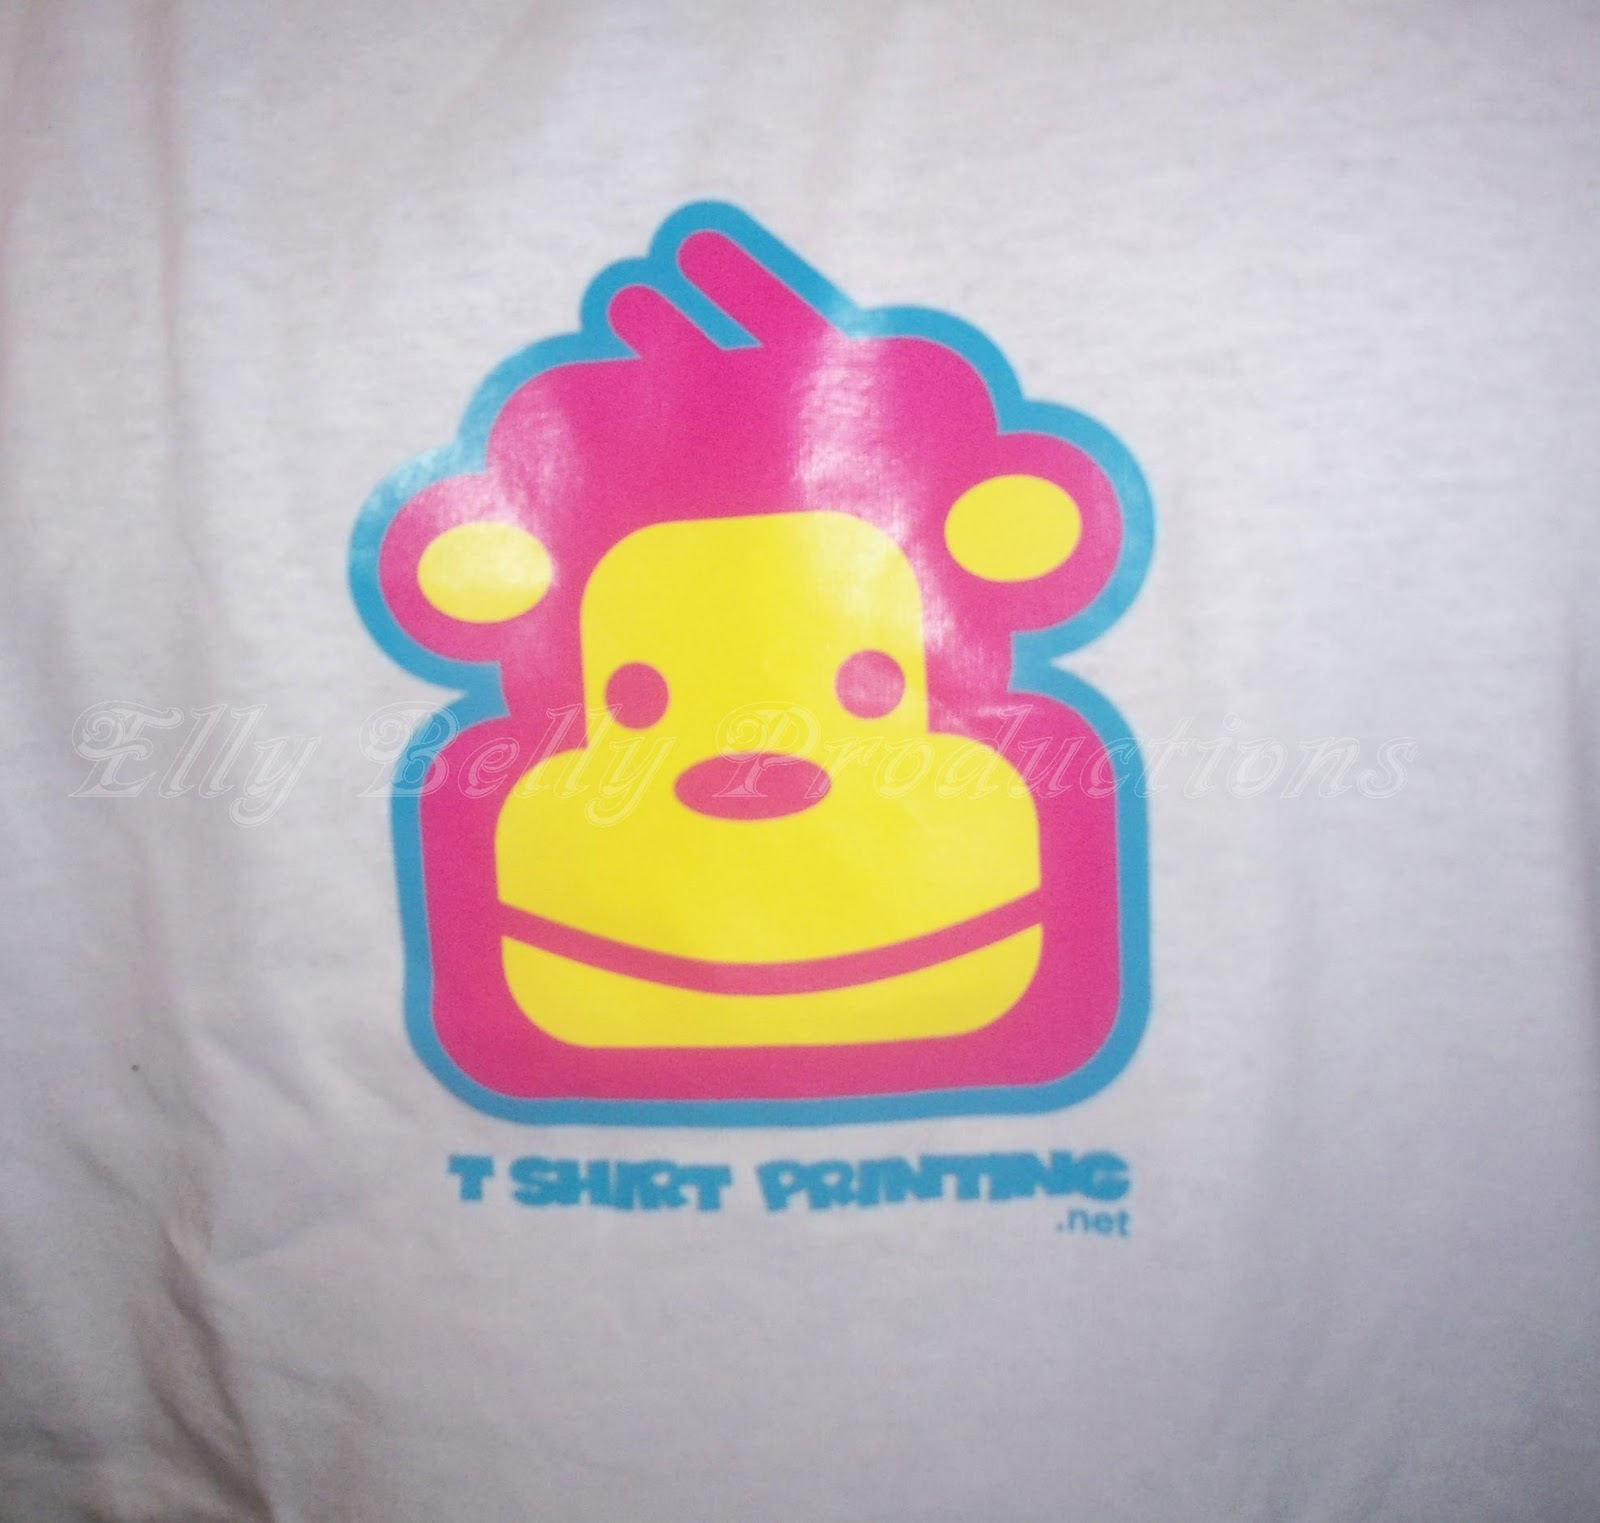 Not So Perfect T Shirt Printing Review